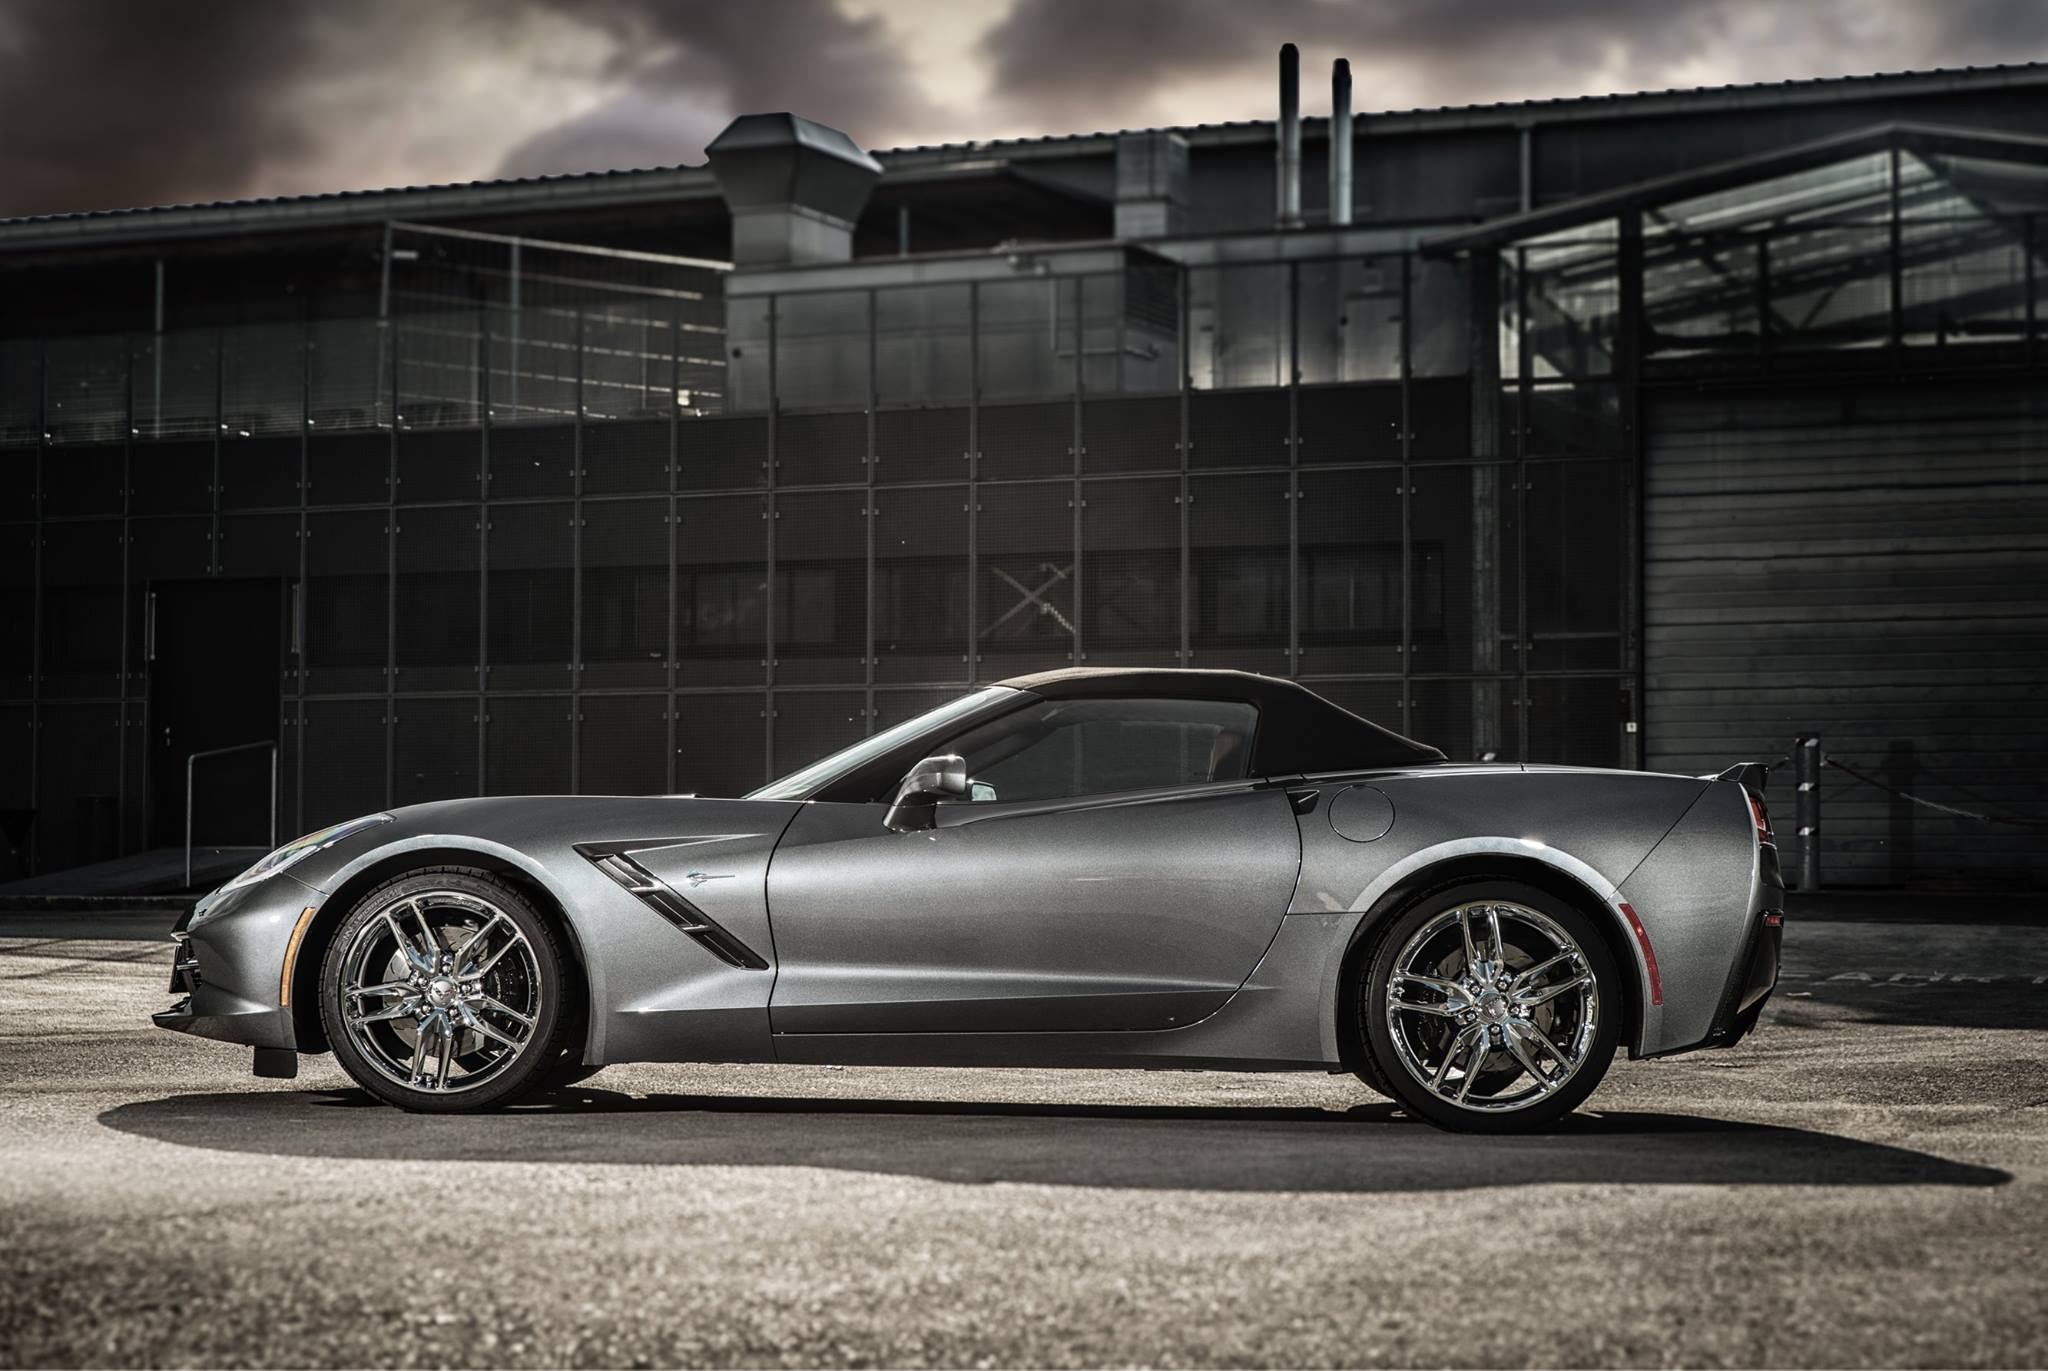 Vette Octuning Side on 2015 Chevrolet Corvette